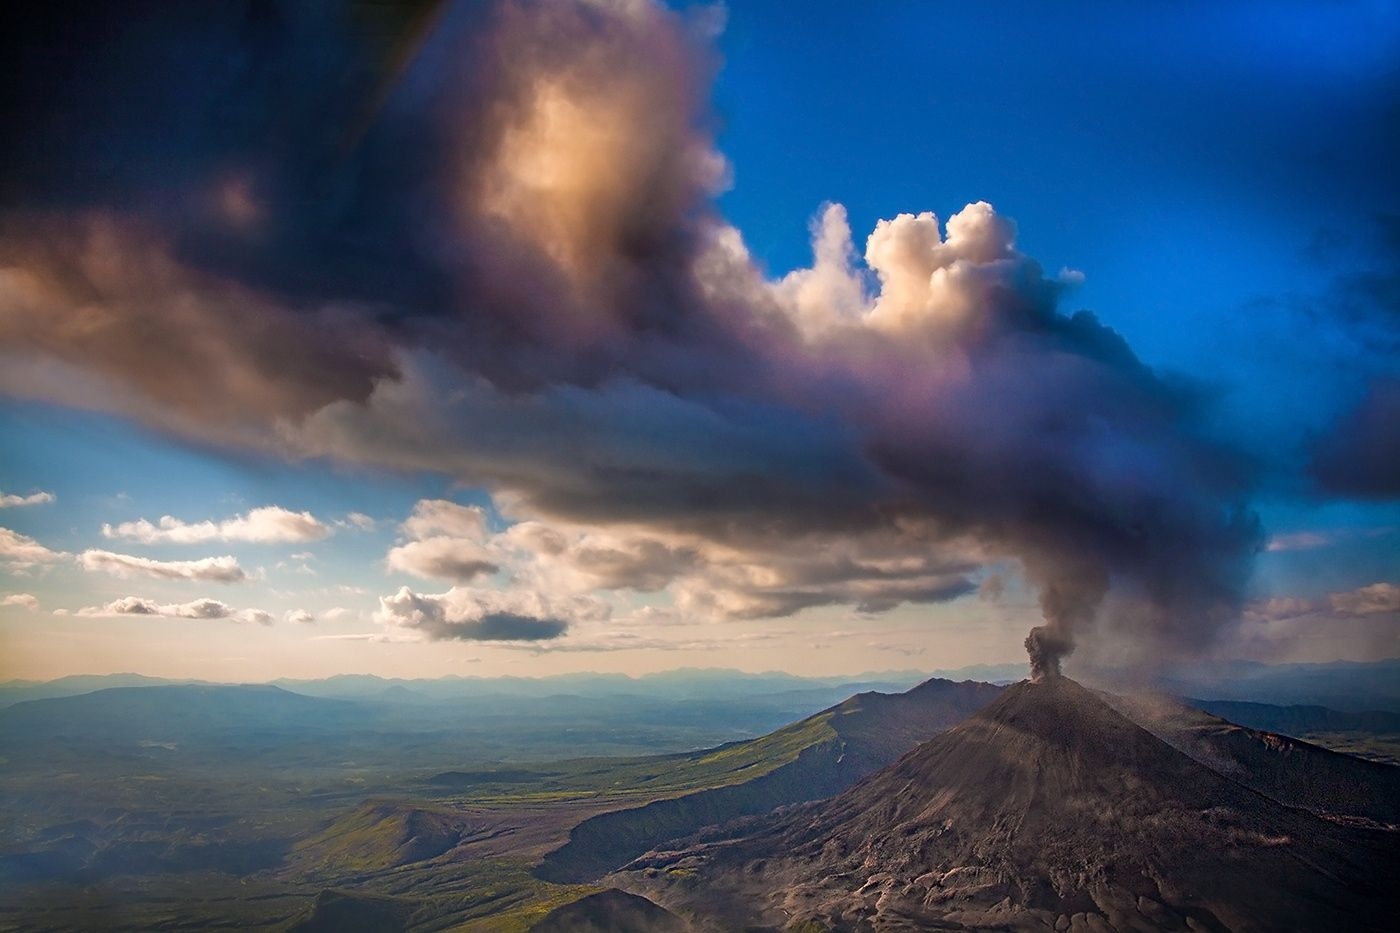 The Other Side of Kamchatka by Jungshik Lee on 500px